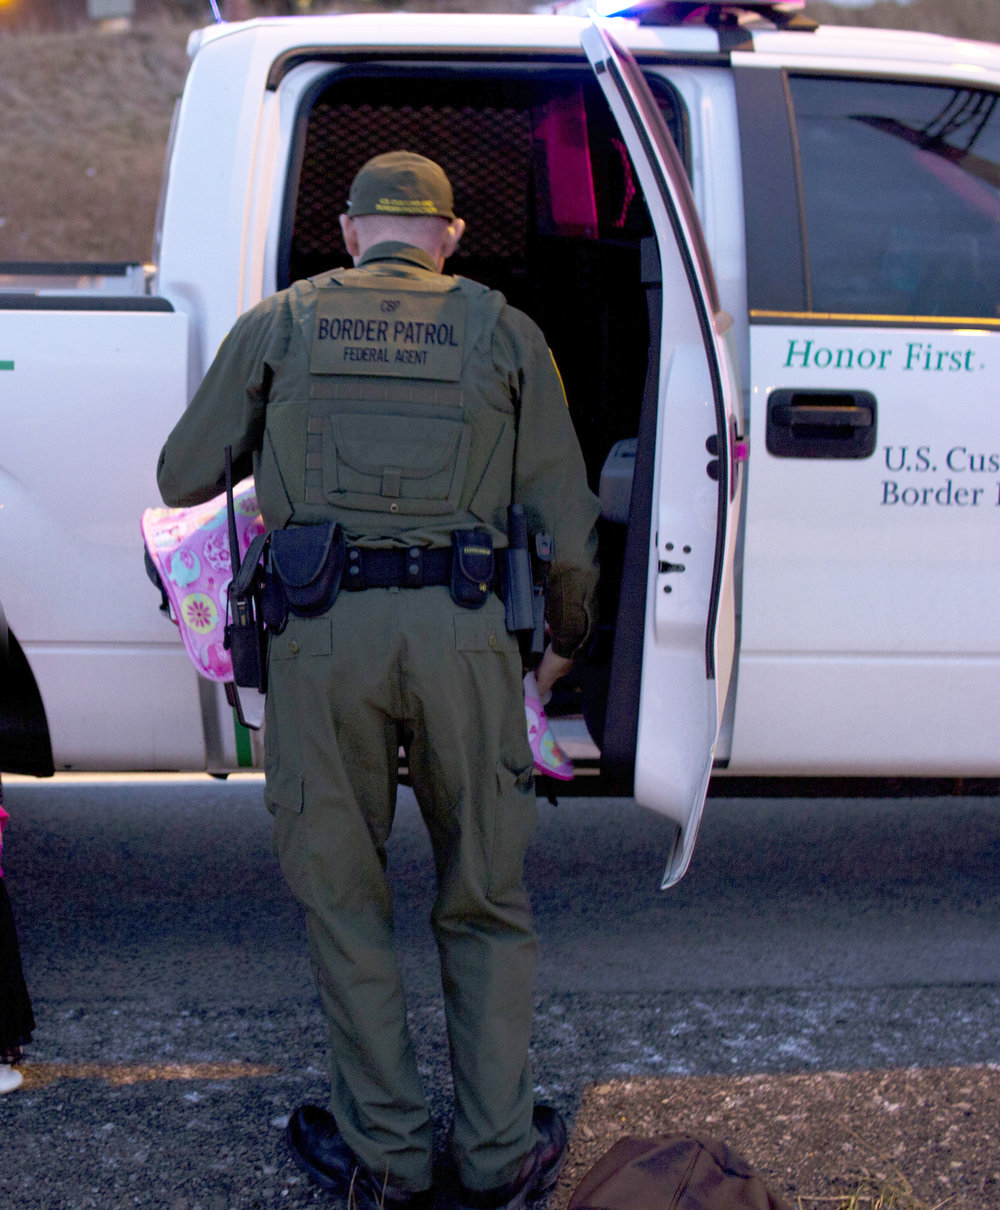 Pictured above is a border patrol agent who detained a migrant worker family who did not have driver's licenses in Geneseo. TheWorkers Justice Center would like to see increased provisions allowing immigrants to hold temporary licenses to prevent detainment. (Courtesy of Evan Goldstein)